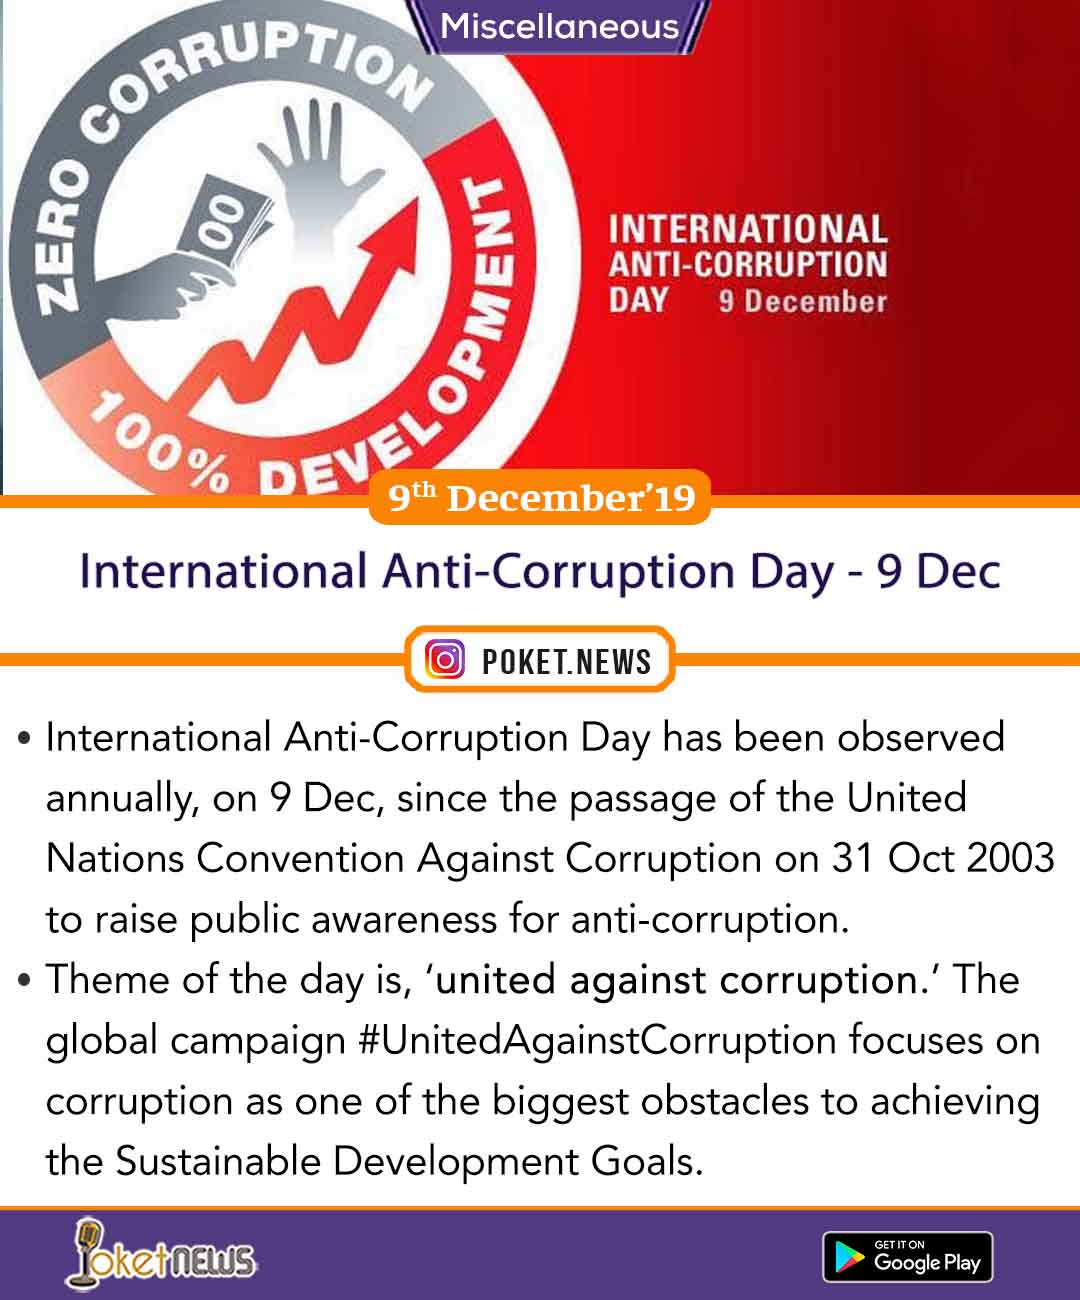 International Anti-Corruption Day - 9 Dec